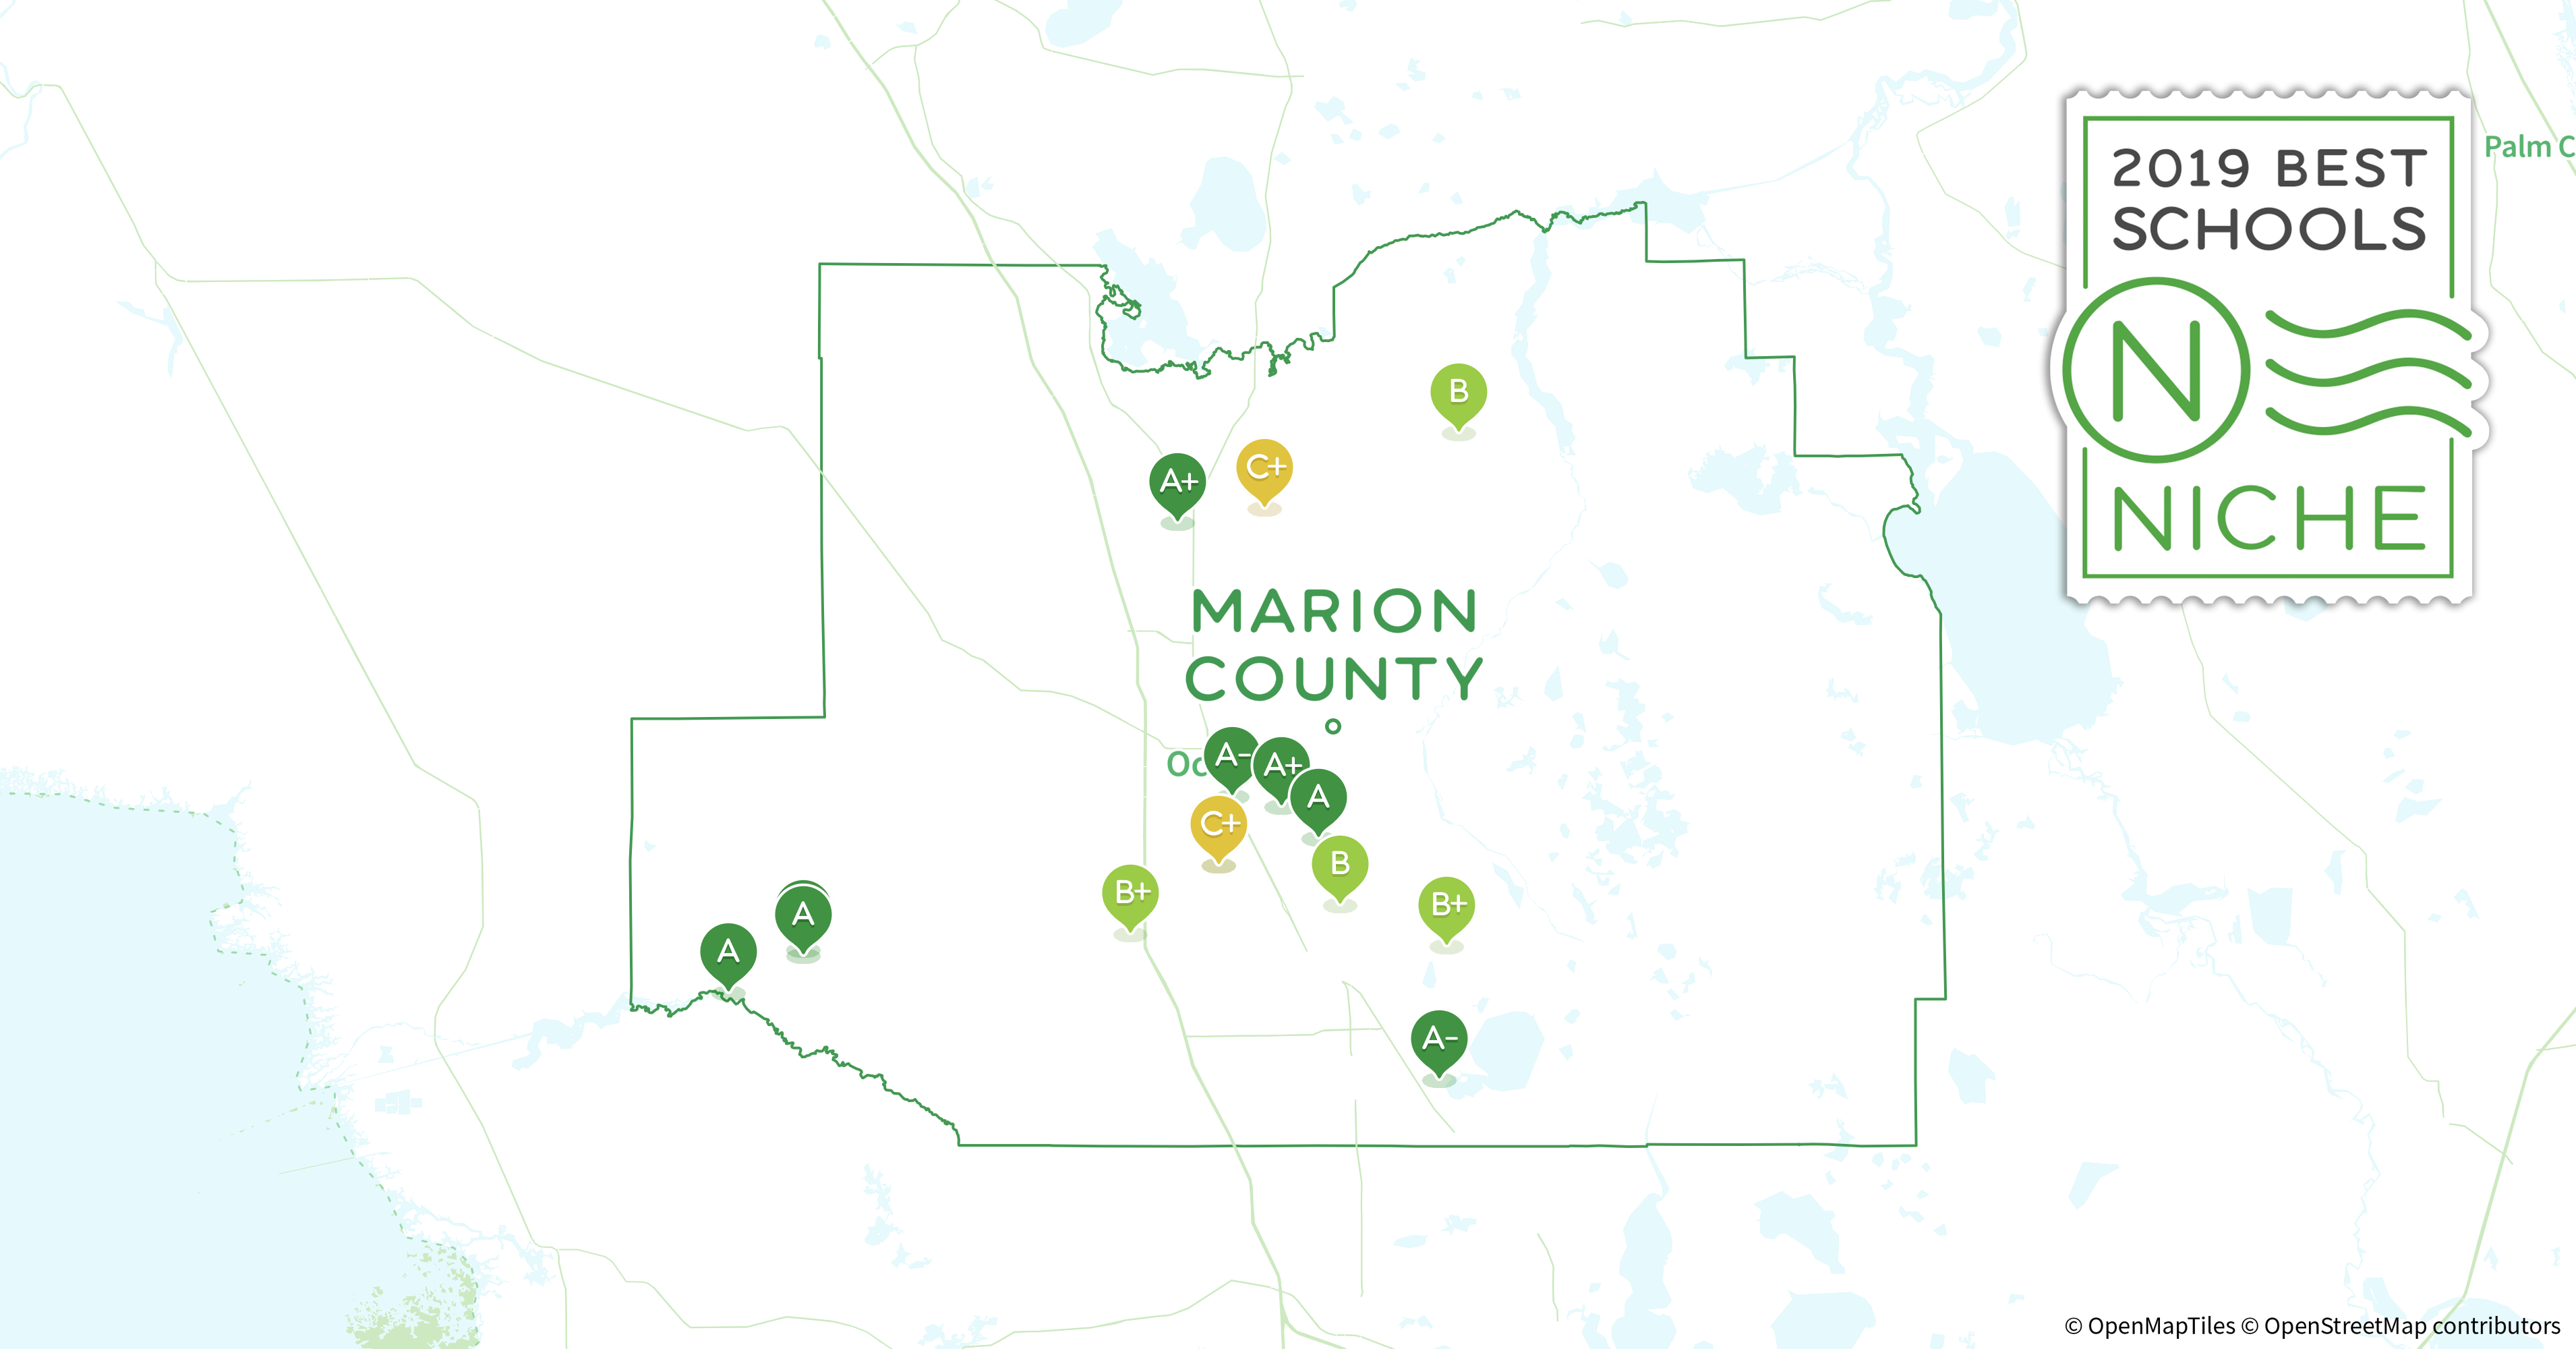 2019 Best Public Middle Schools in Marion County, FL - Niche